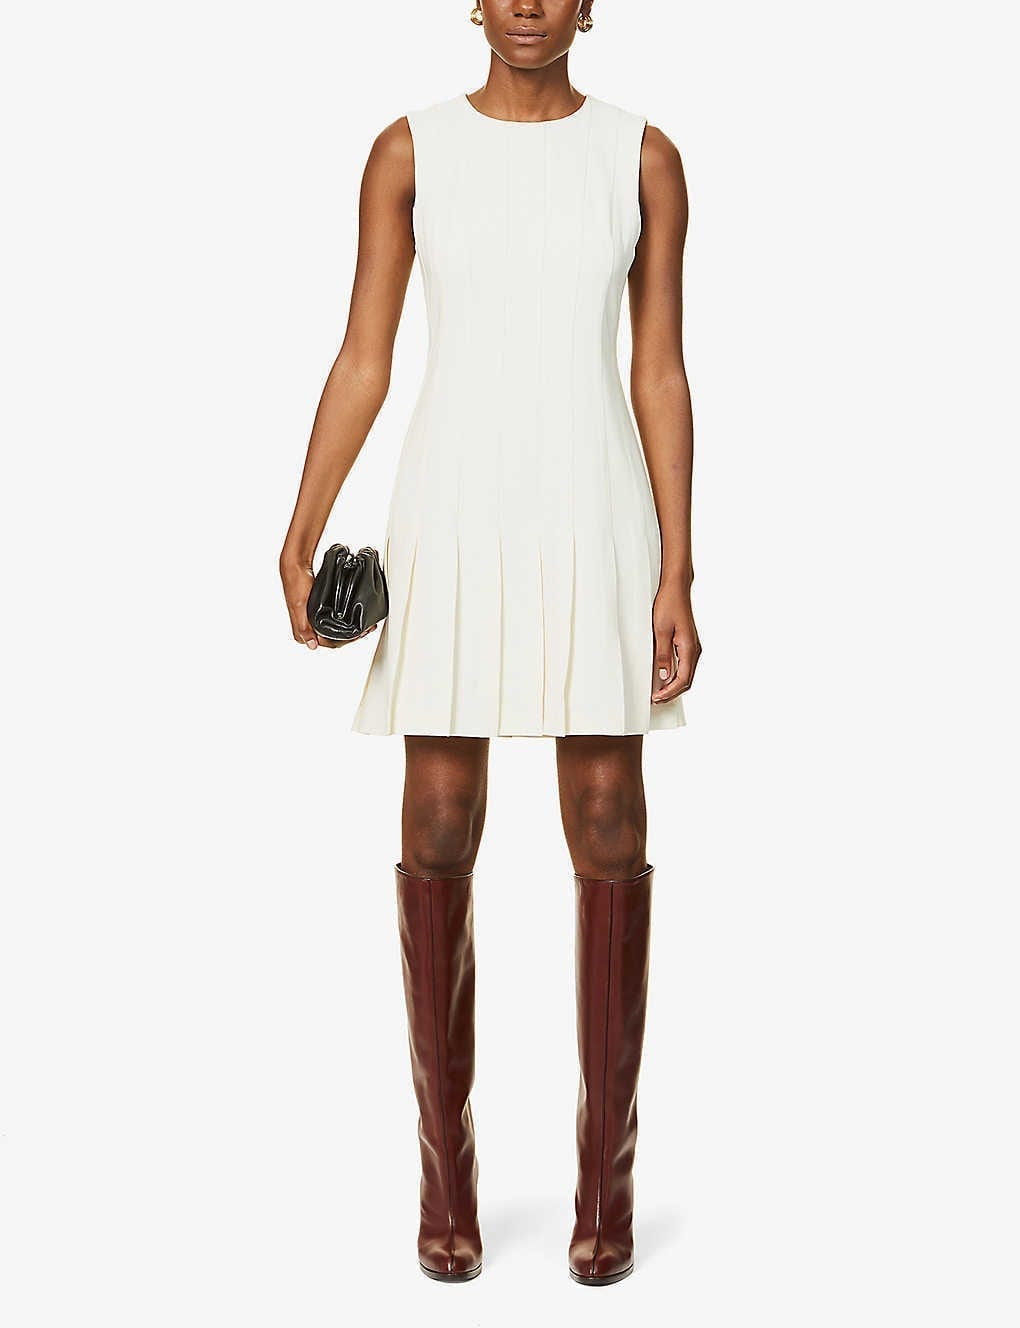 THEORY Sleeveless Woven Mini Dress